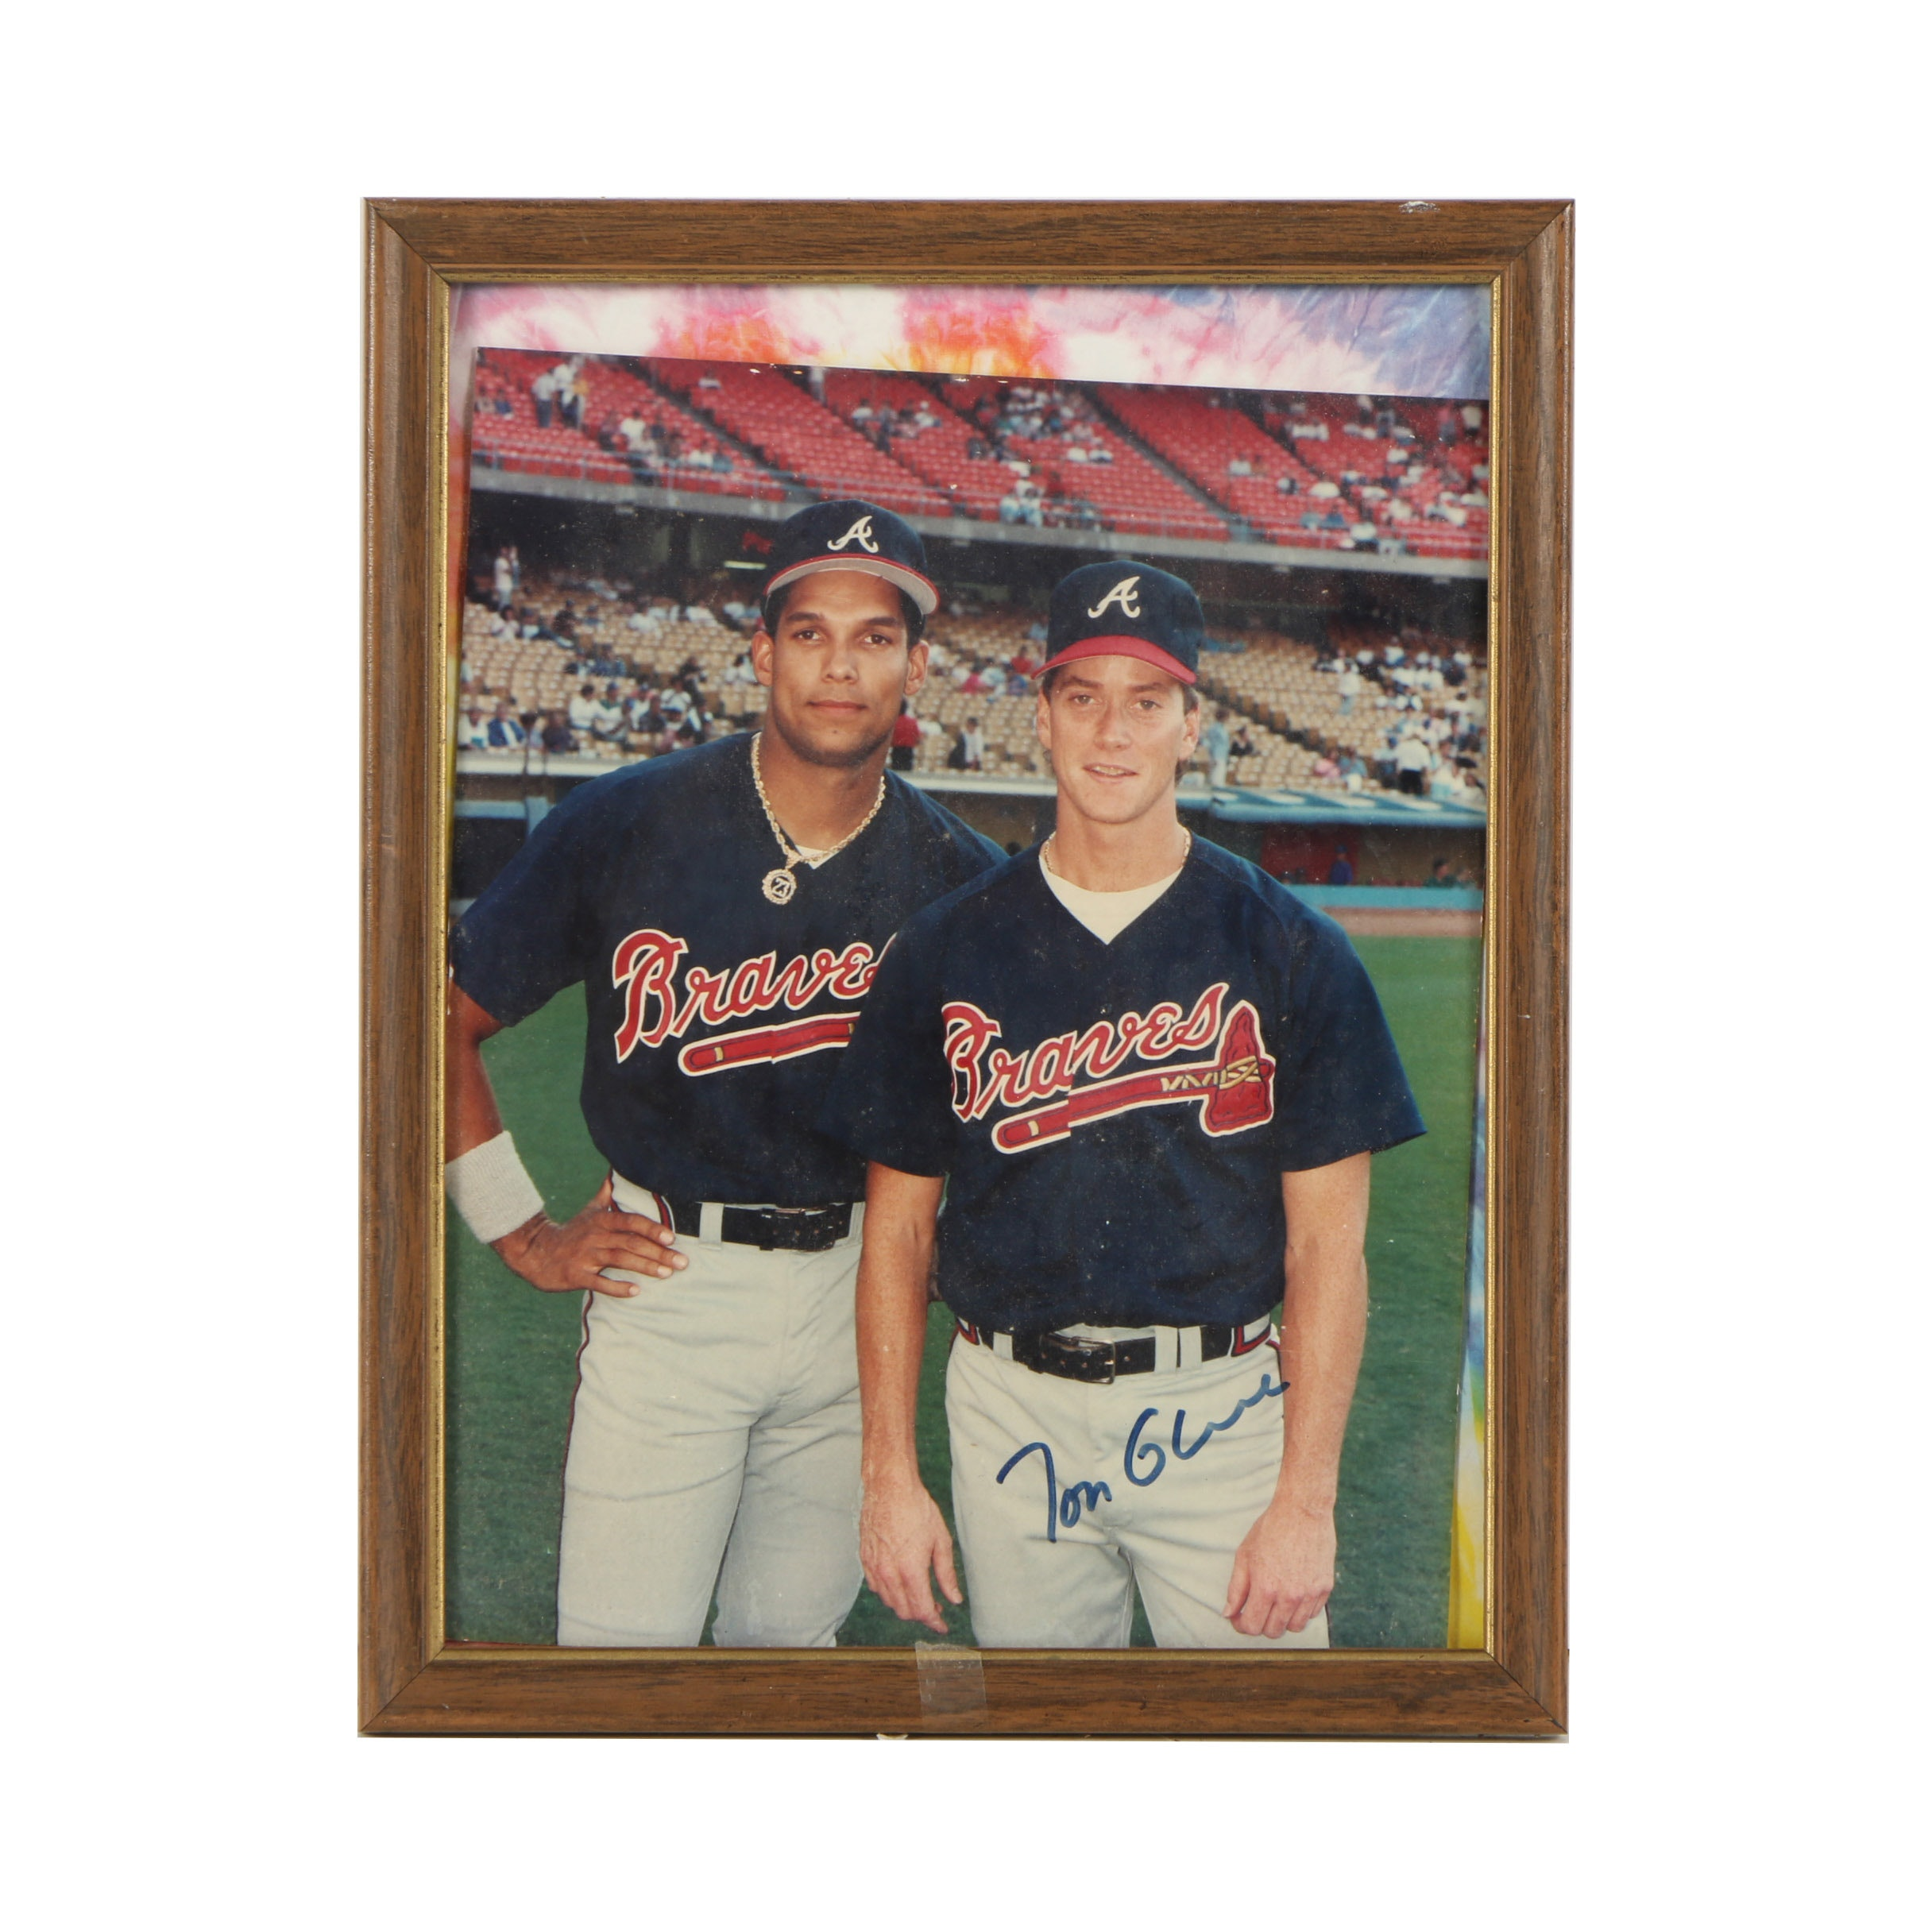 Autographed Photograph of Tom Glavine